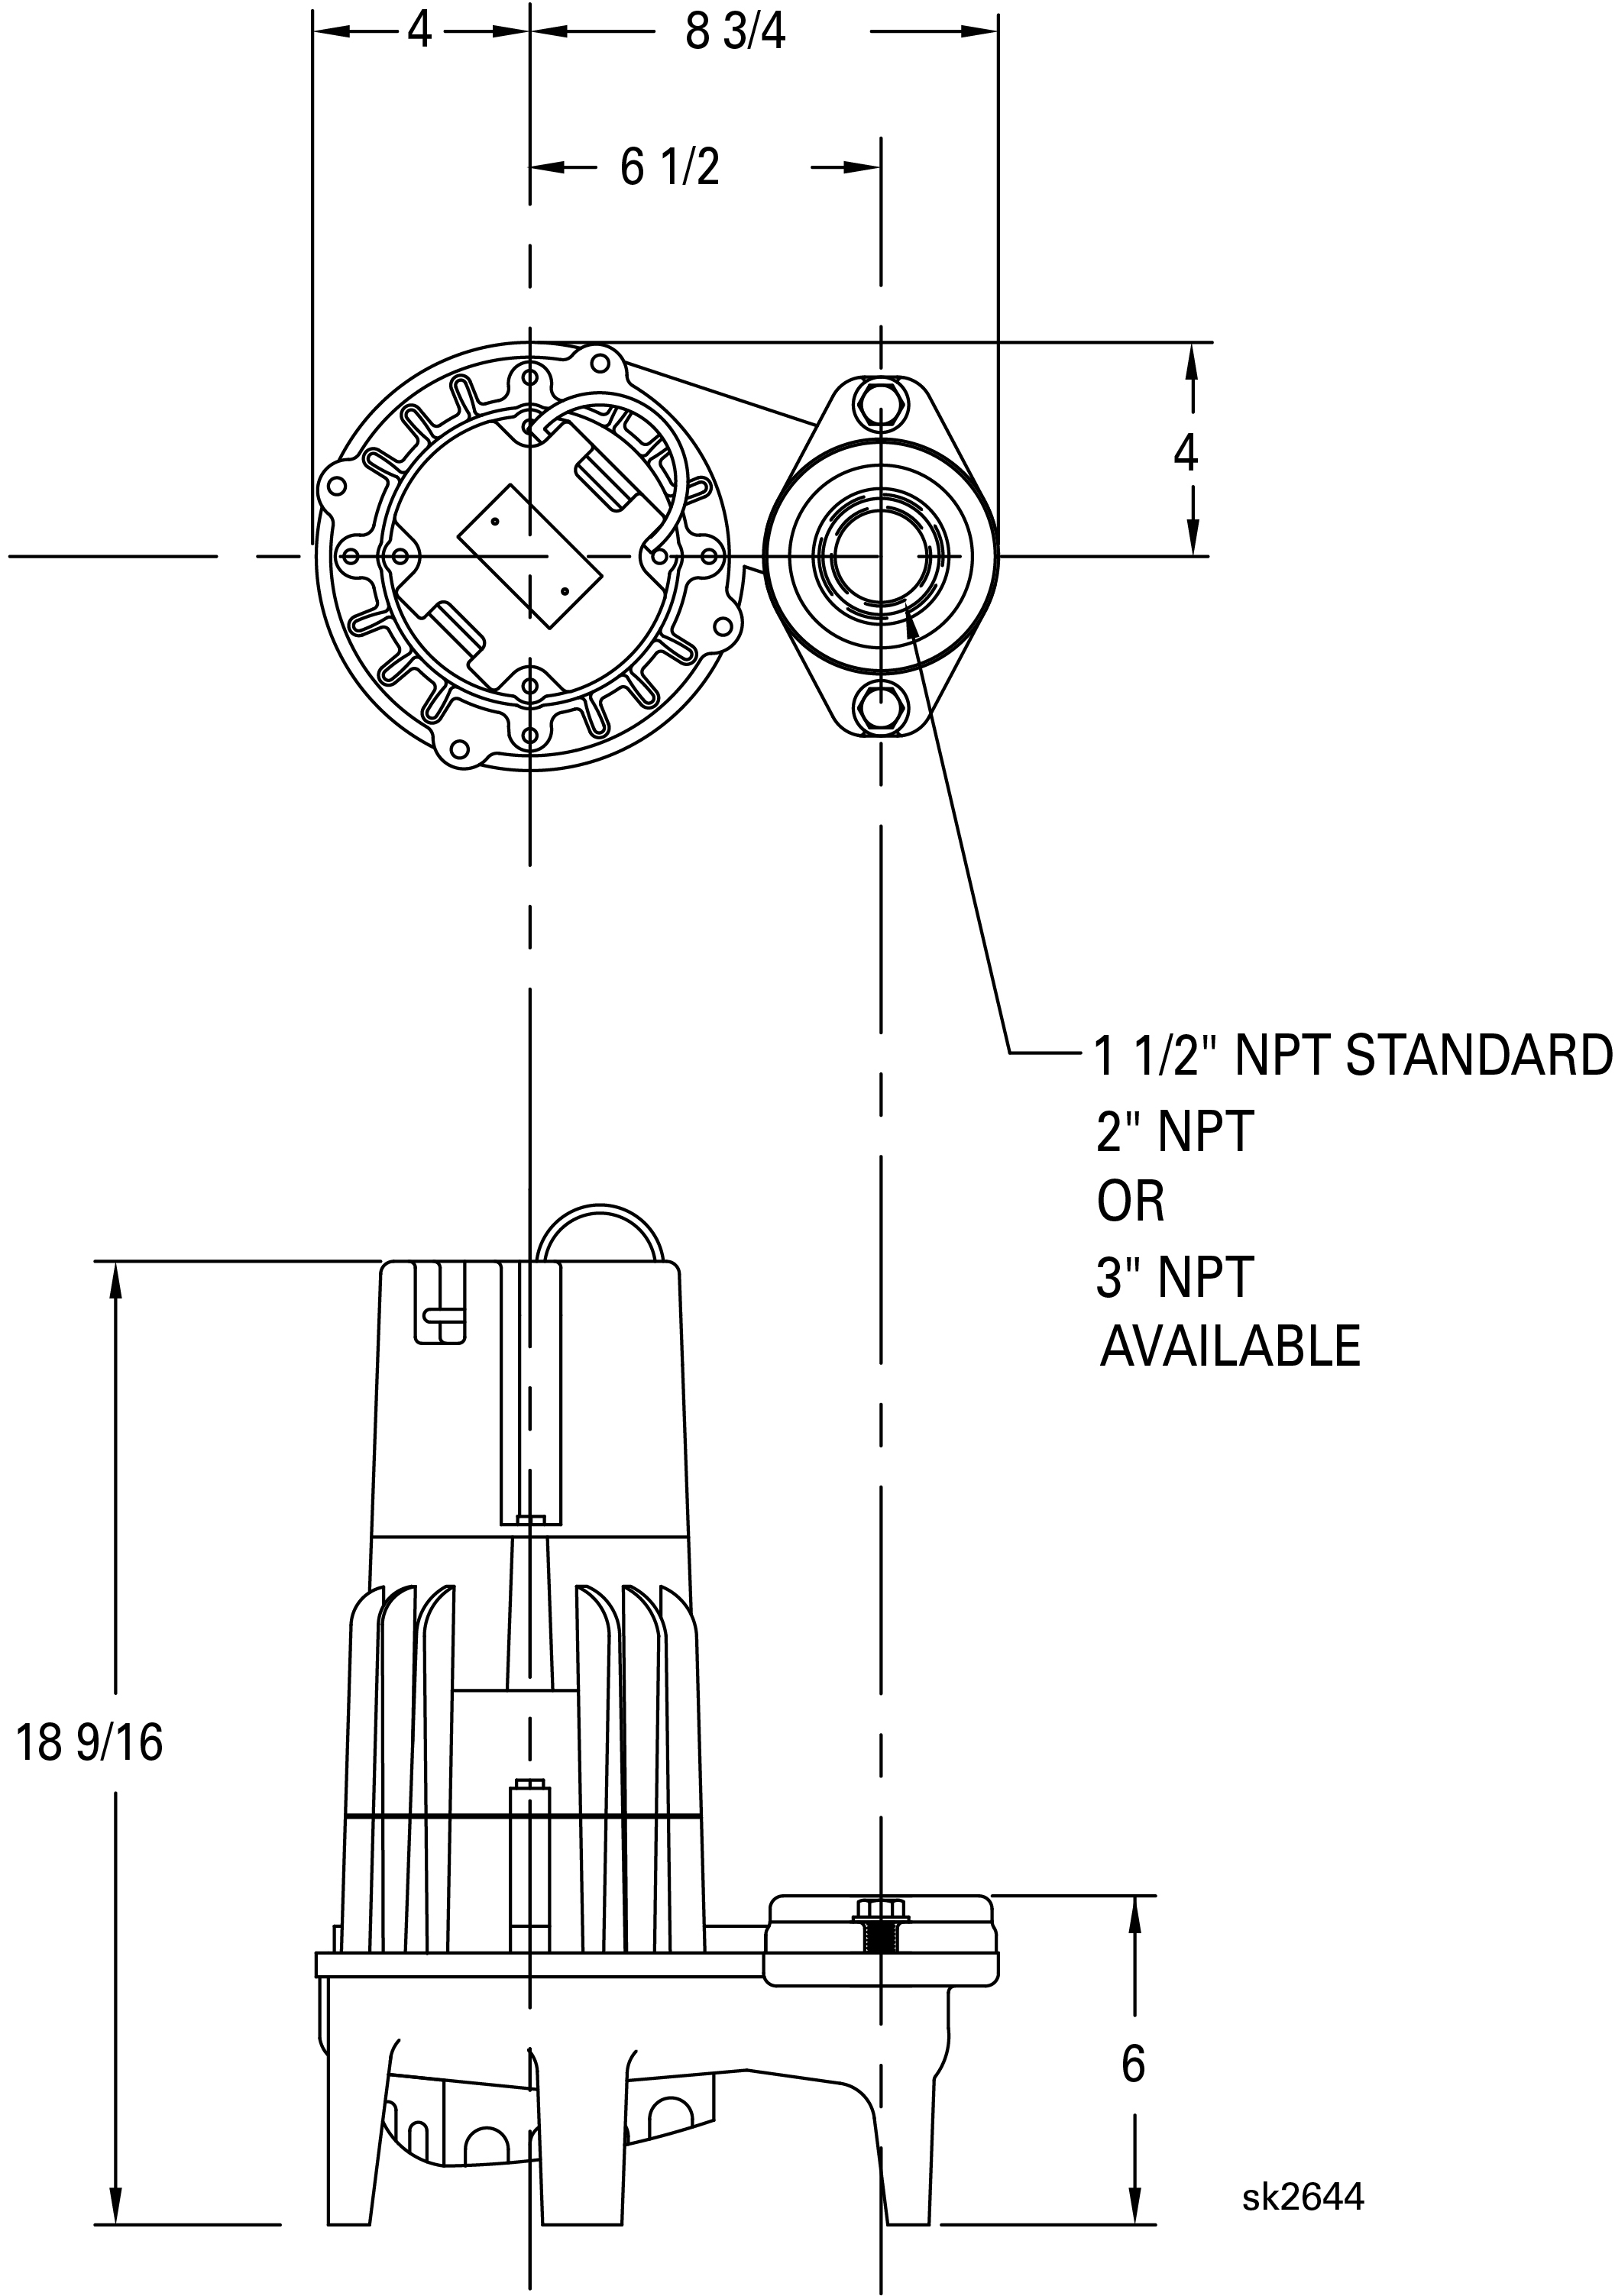 Oil Guard® Systems   Zoeller Pump Company - Well Pump Control Box Wiring Diagram